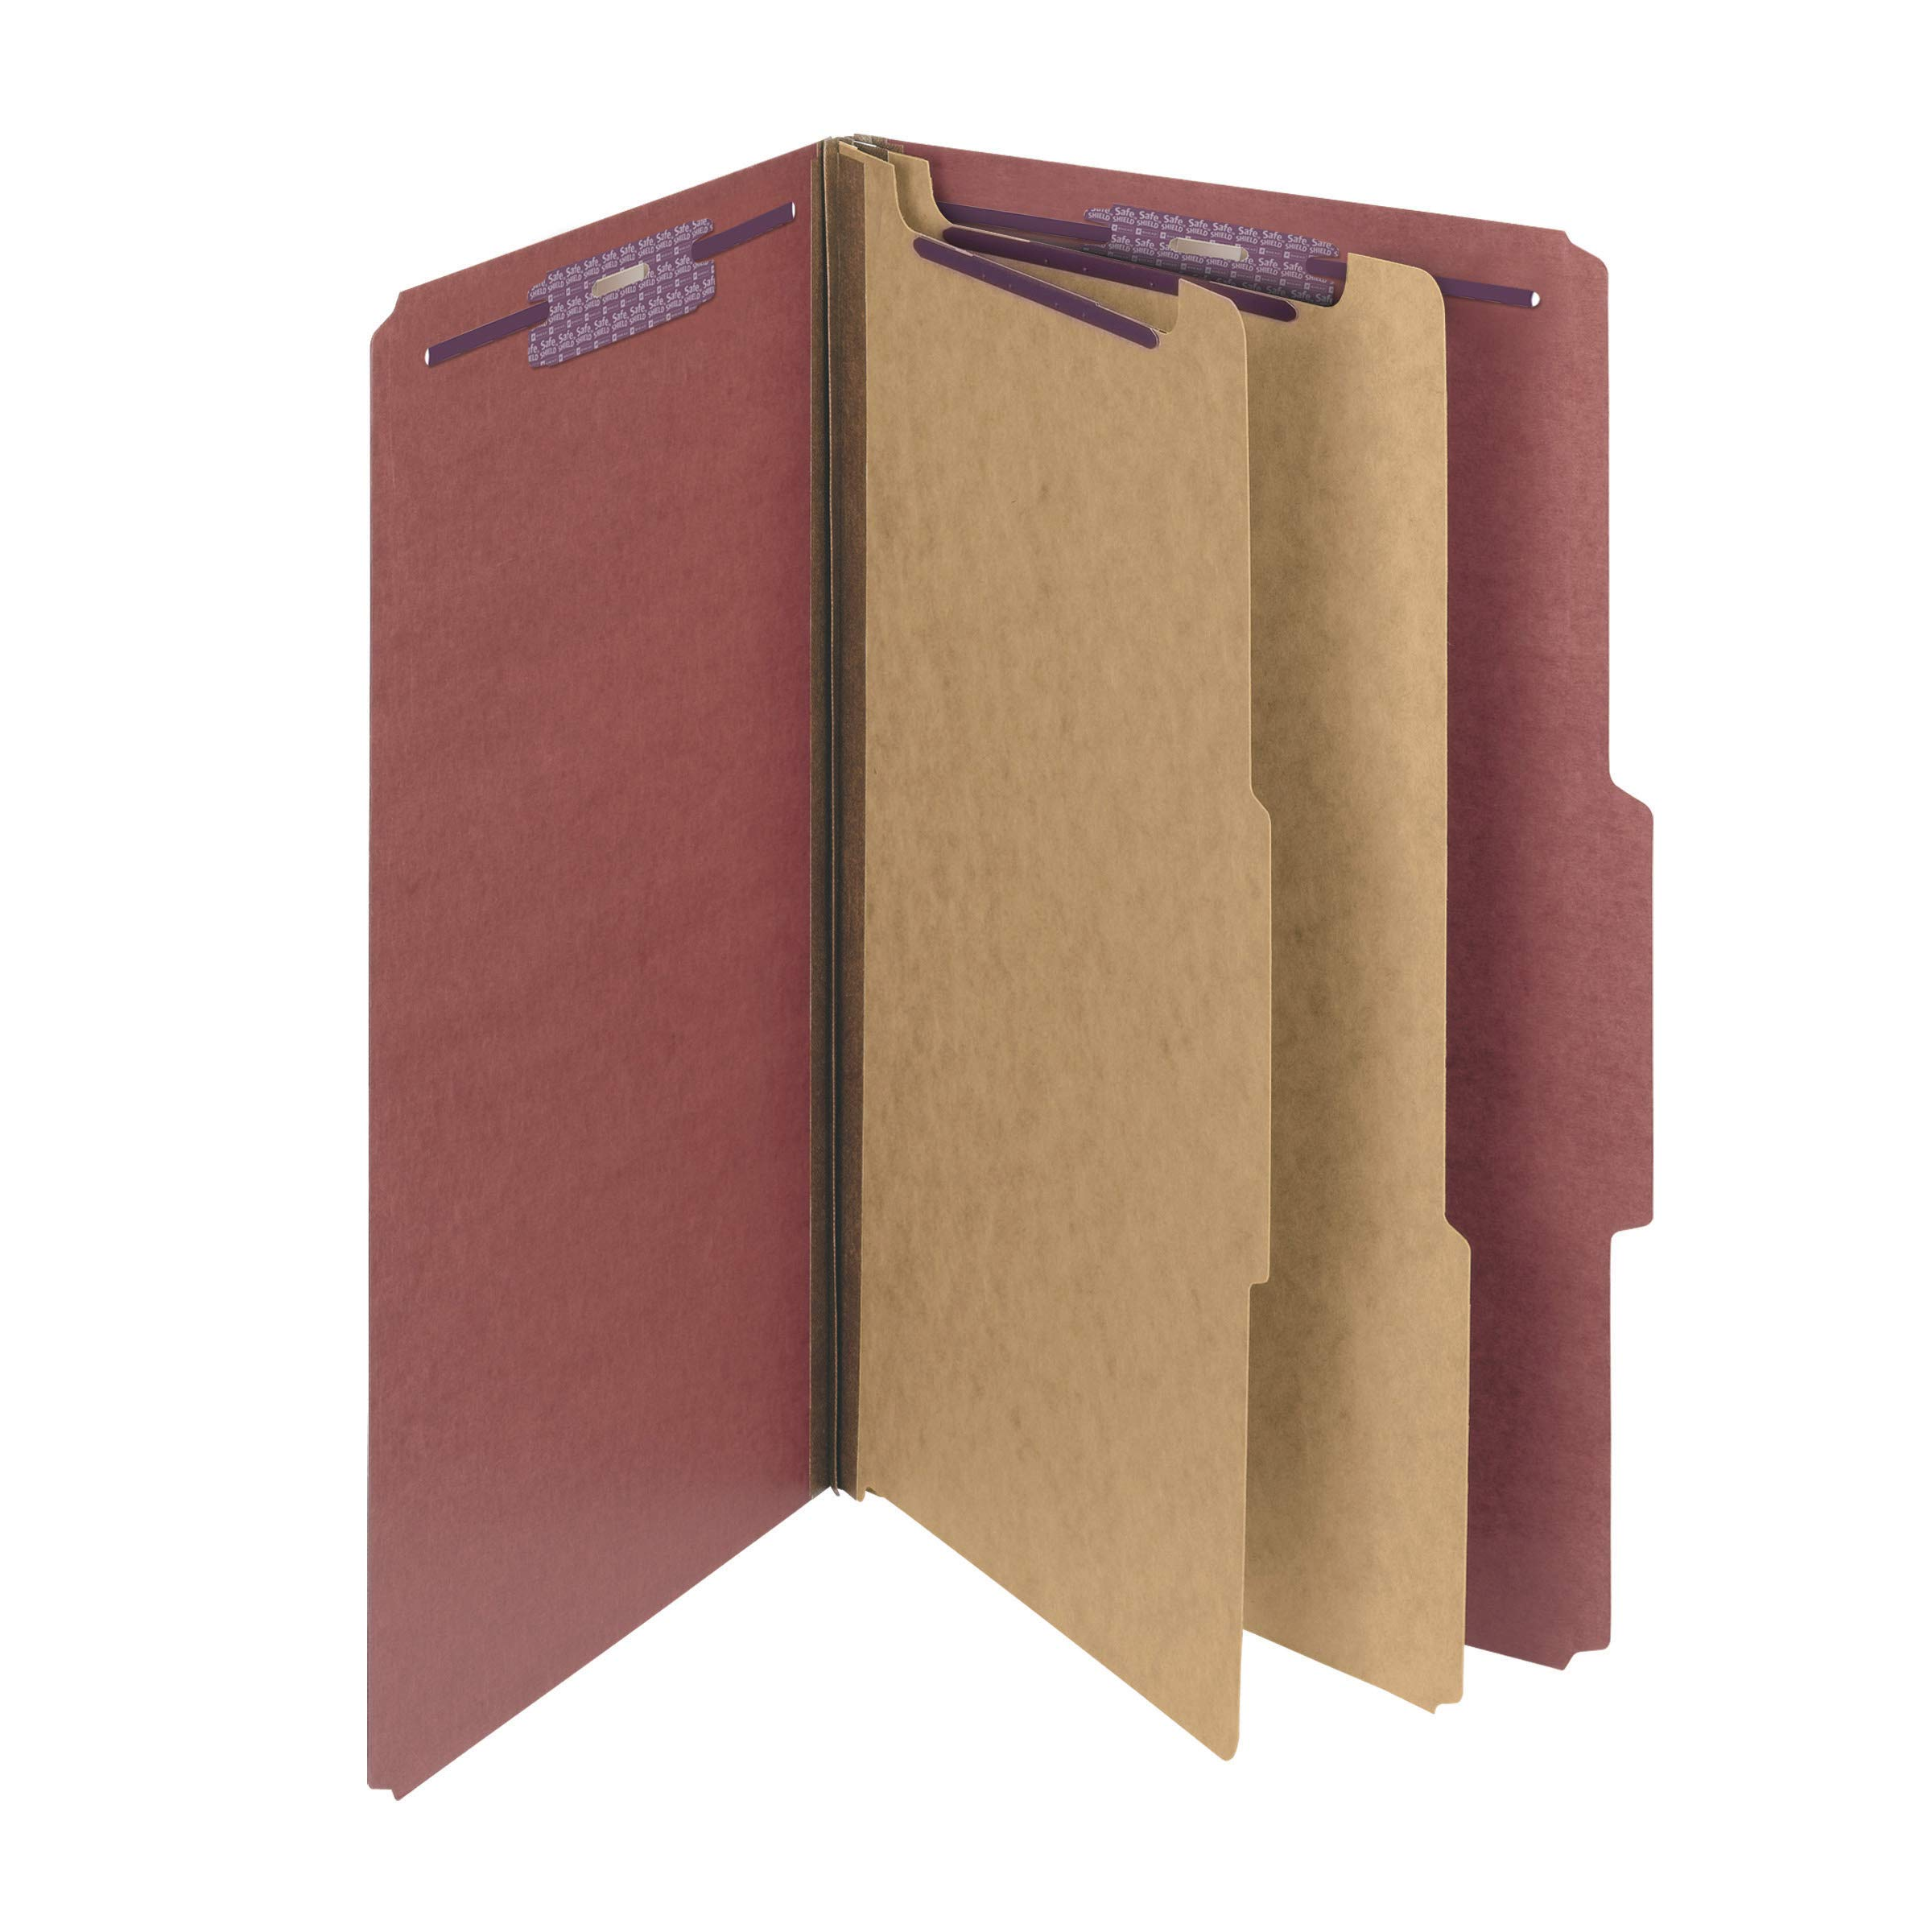 Smead Pressboard Classification File Folder with SafeSHIELD Fasteners, 2 Dividers, 2'' Expansion, Legal Size, Red, 10 per Box (19075) by Smead